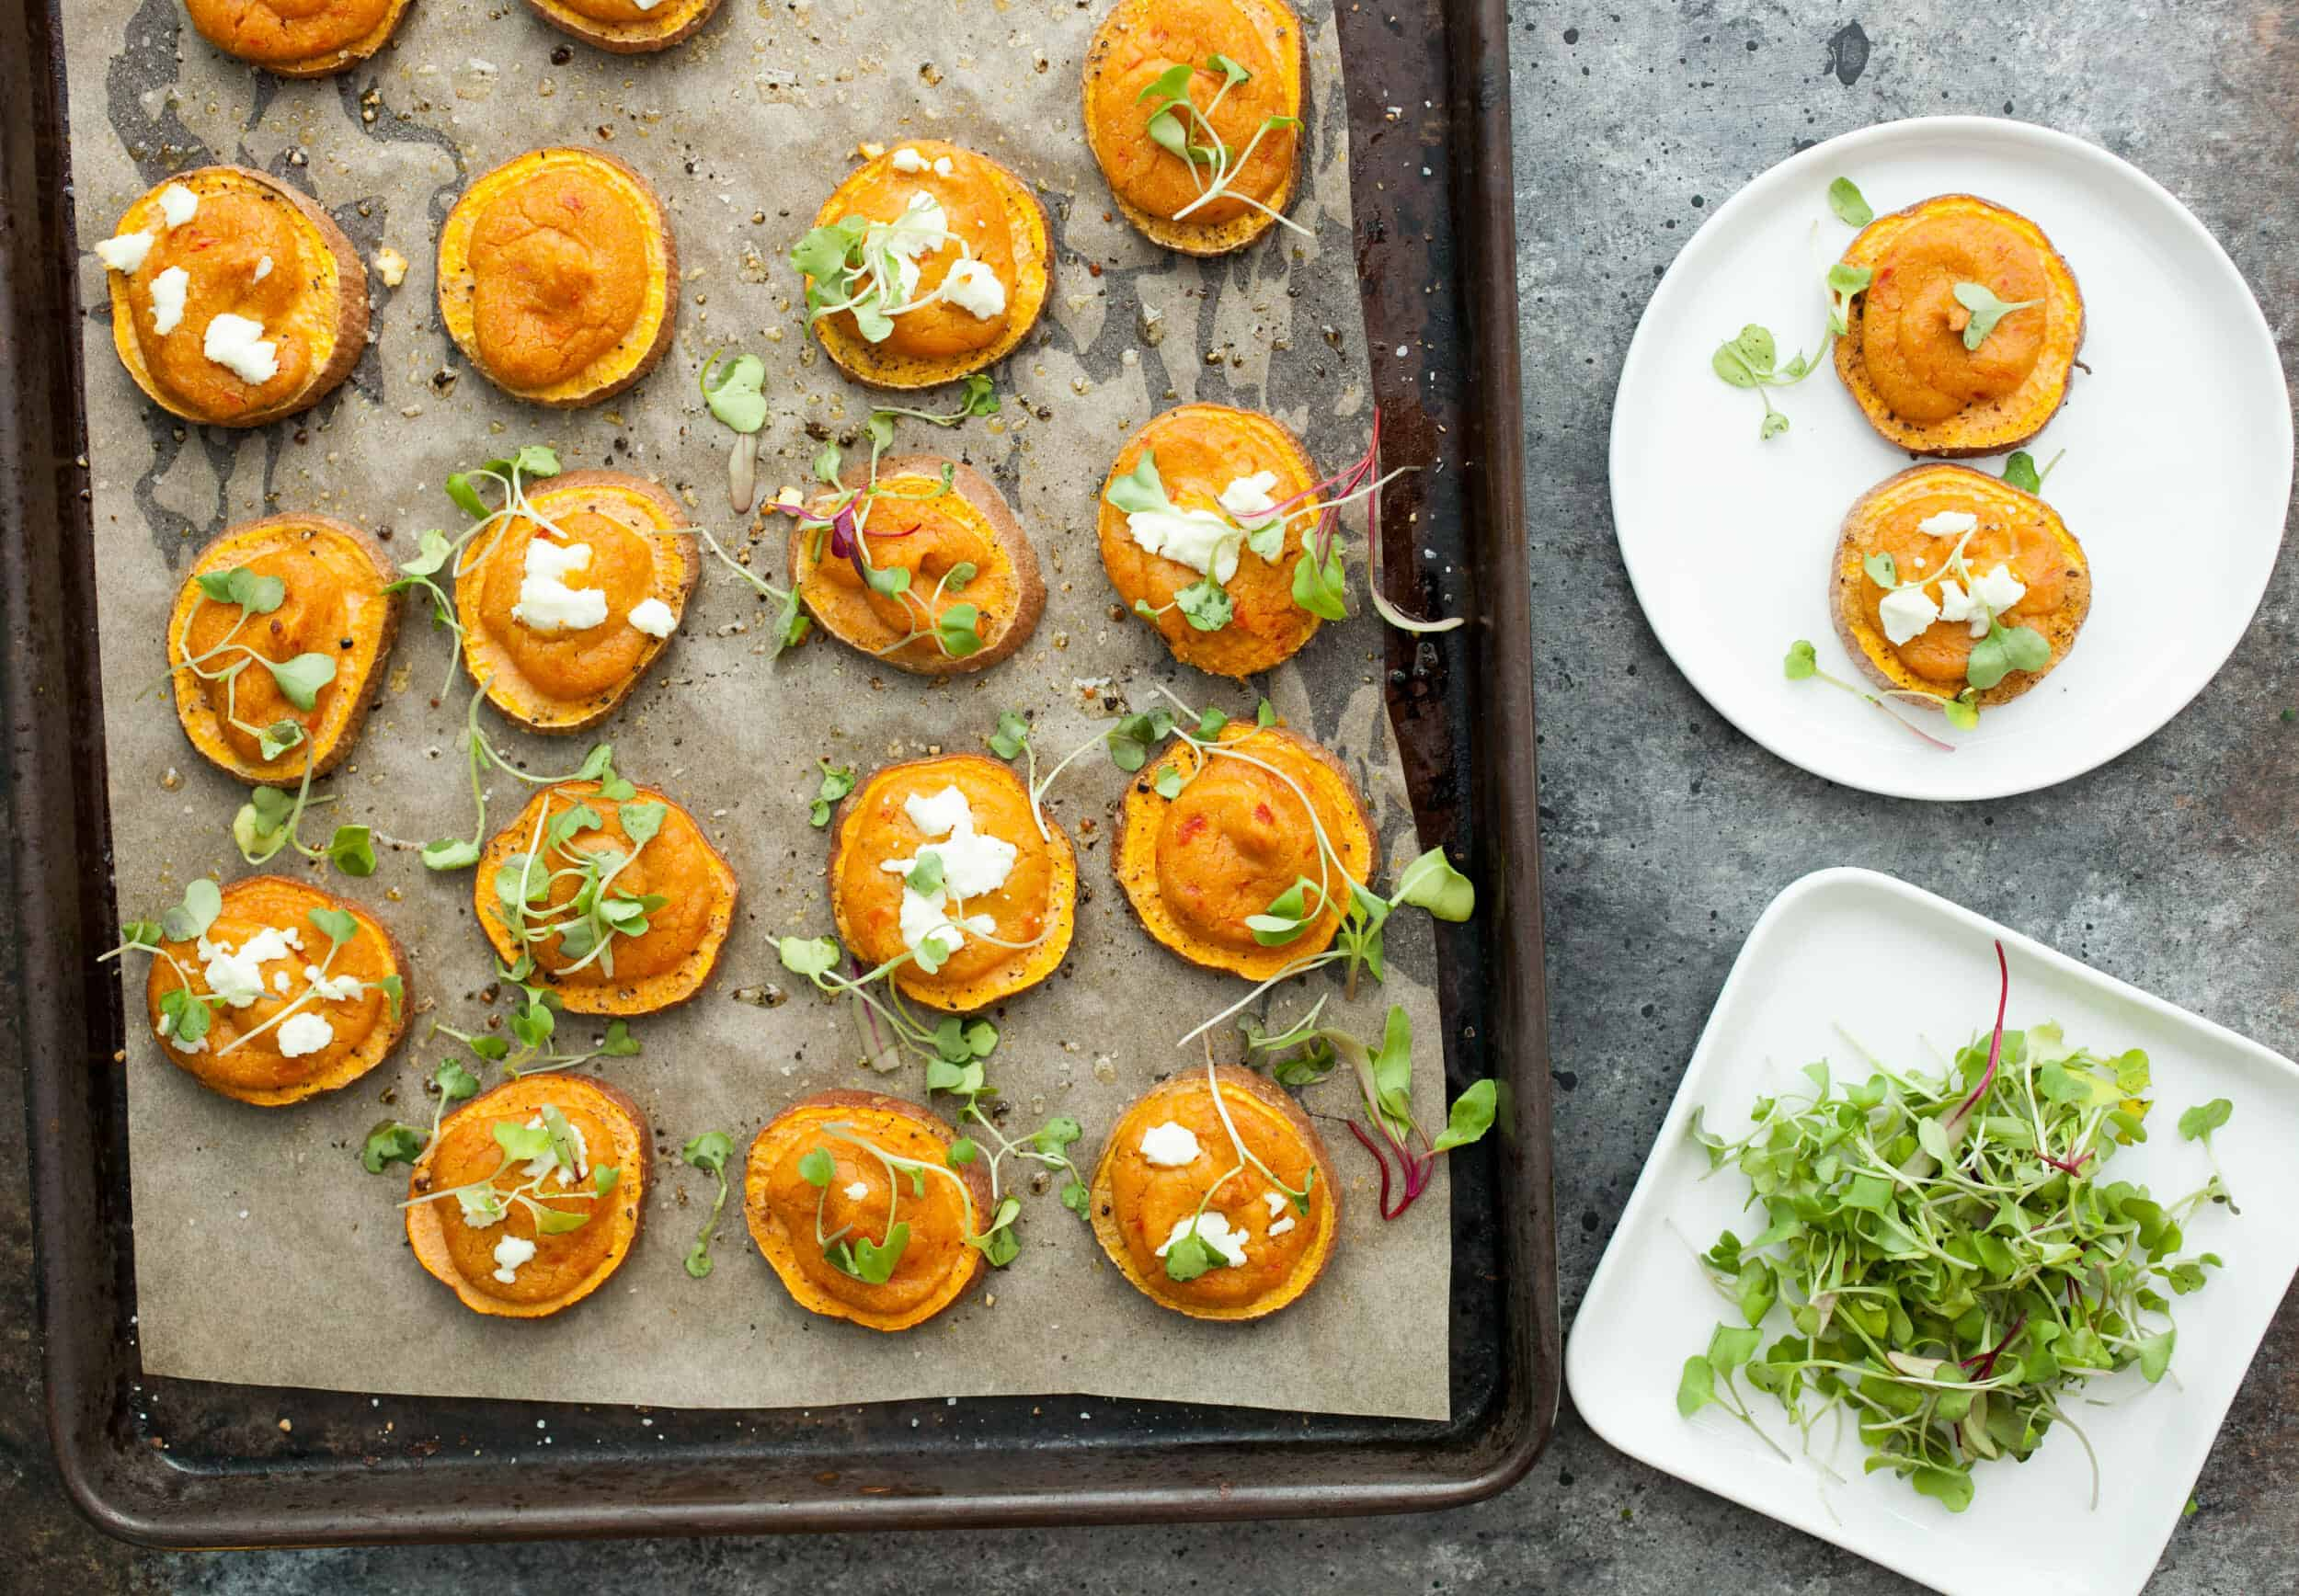 Hummus Sweet Potato Rounds: These beautiful apps are simple to make but have big flavors! Great for a party or pile them up for a quick unofficial meal! | macheesmo.com